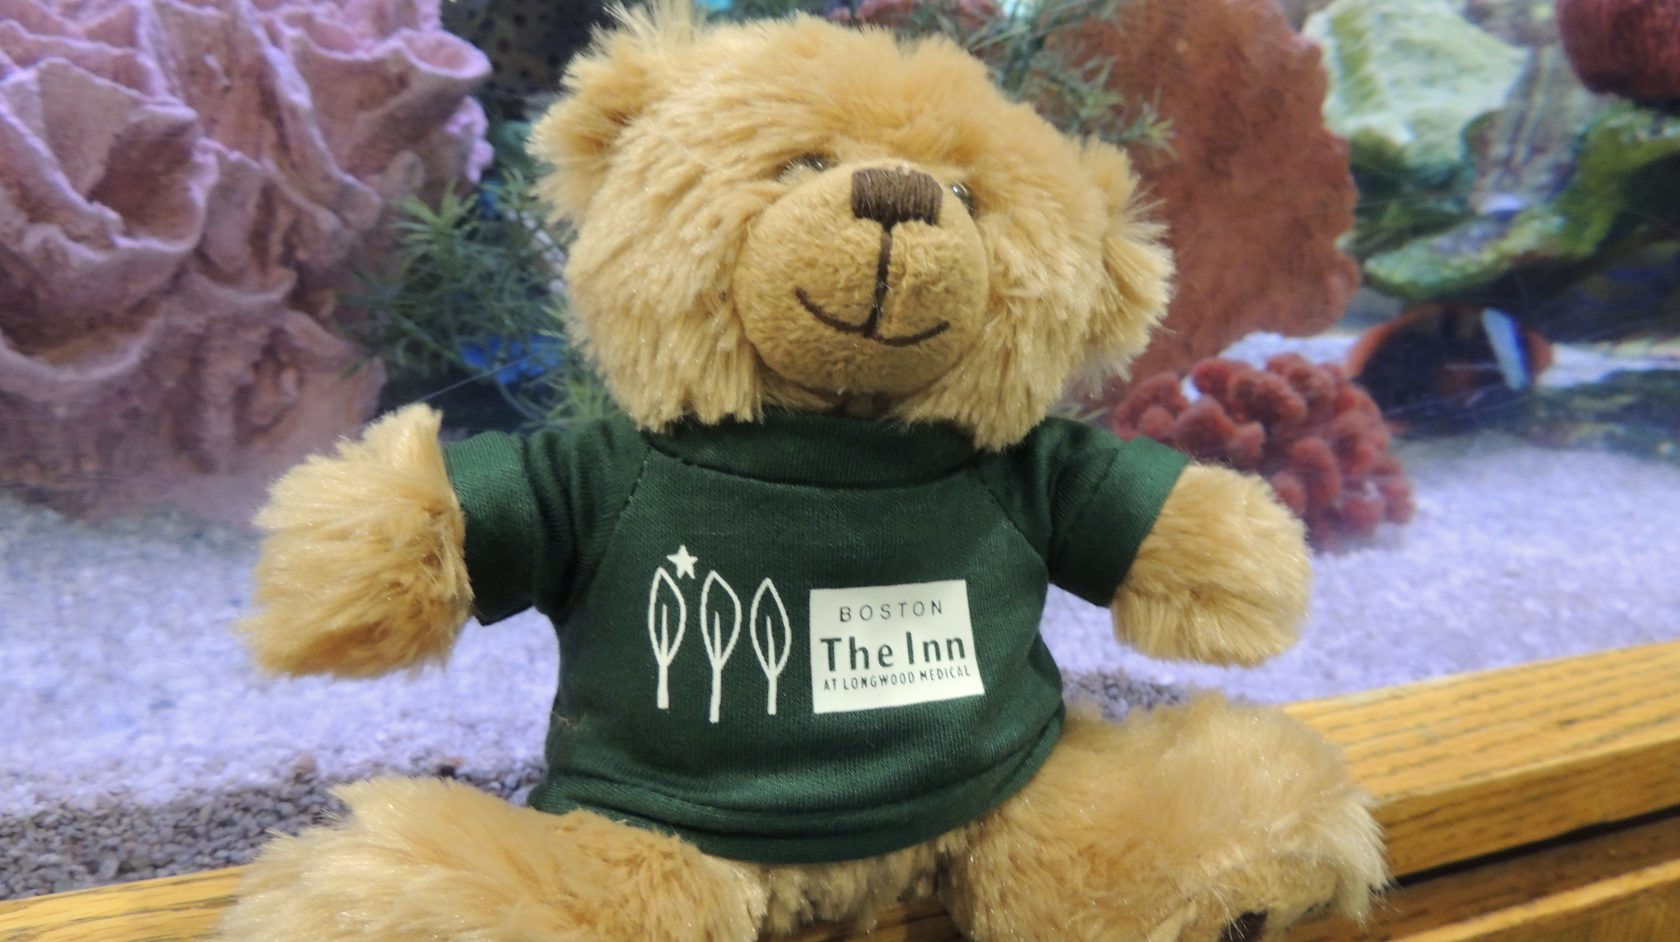 Hope the bear with Inn at Longwood medical shirt on